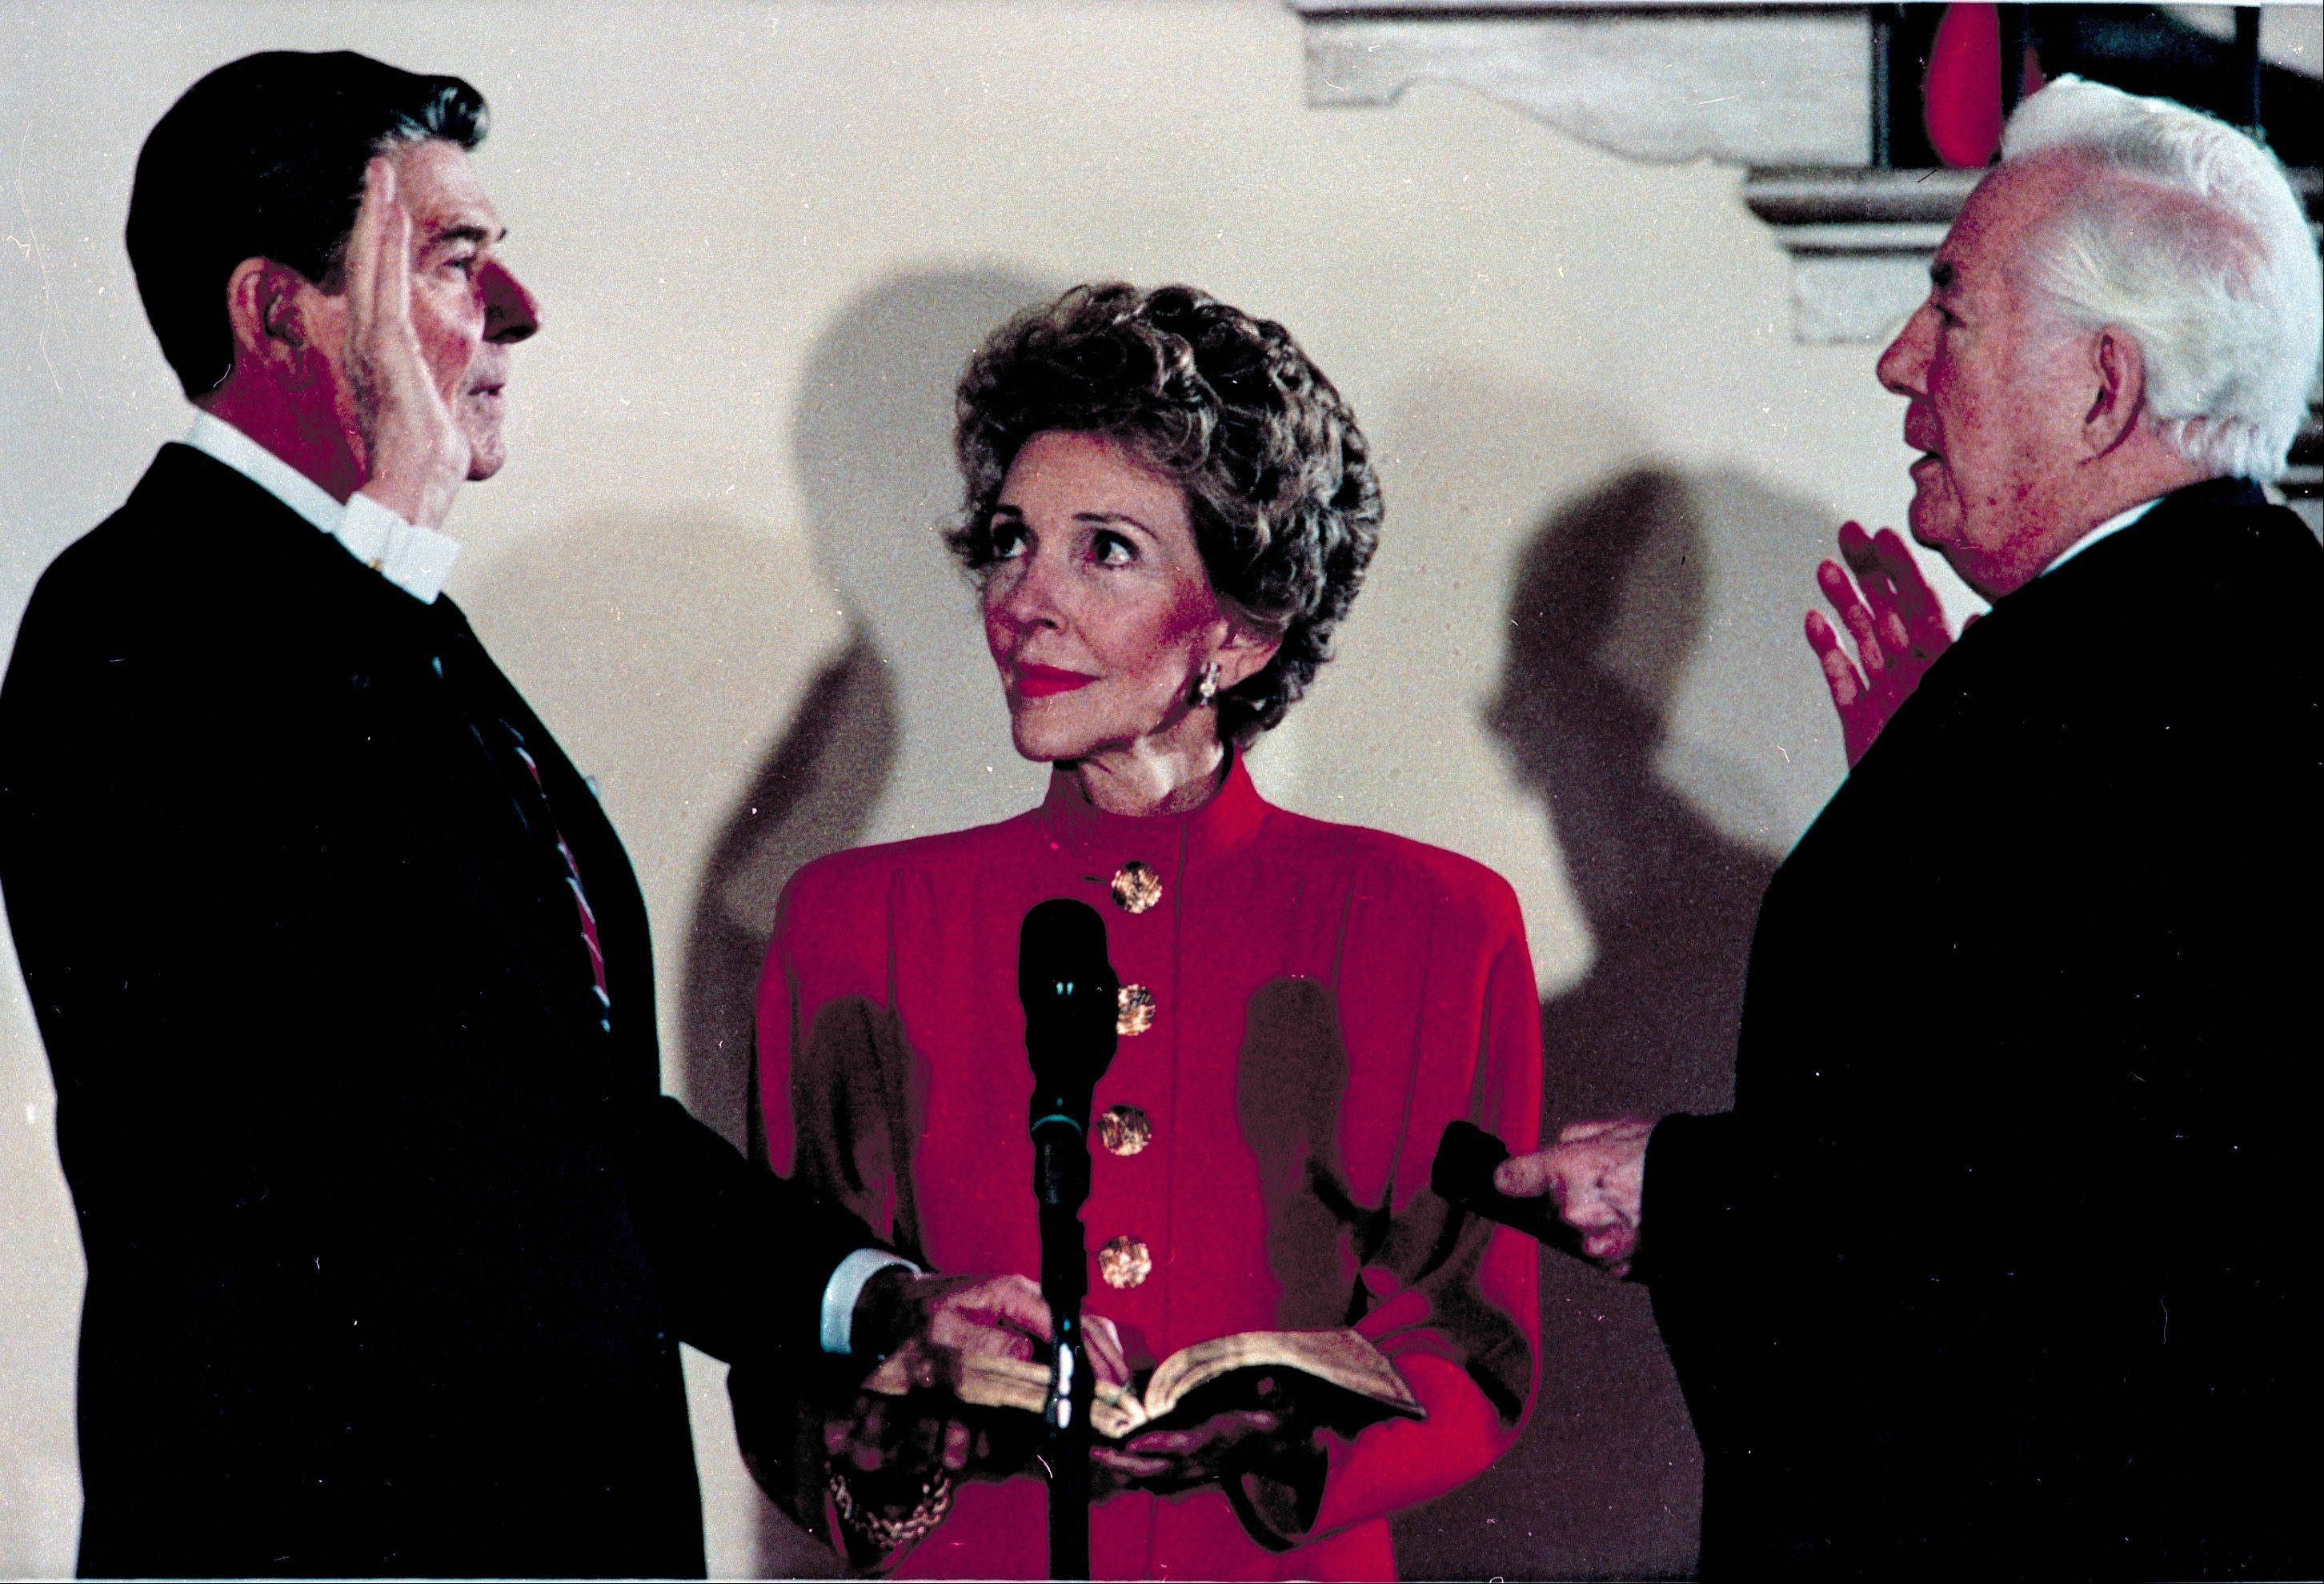 President Ronald Reagan takes the oath of office administered by Chief Justice Warren Burger in a private White House ceremony for a second term in Washington, D.C., Sunday, Jan. 20, 1985. First Lady Nancy Reagan holds the bible.